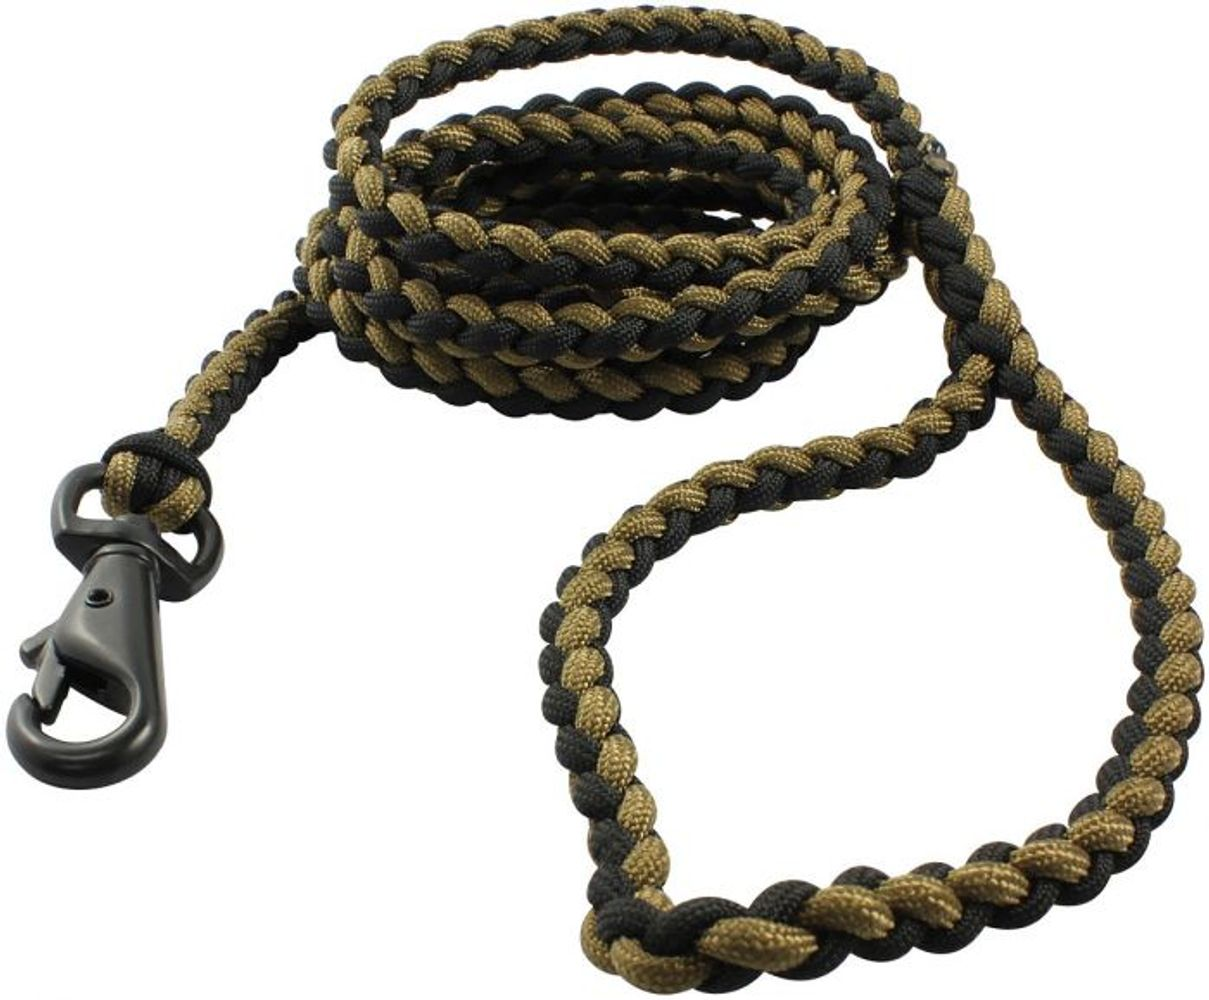 Dog Leash/ Survival Dog Lead (6 Feet)